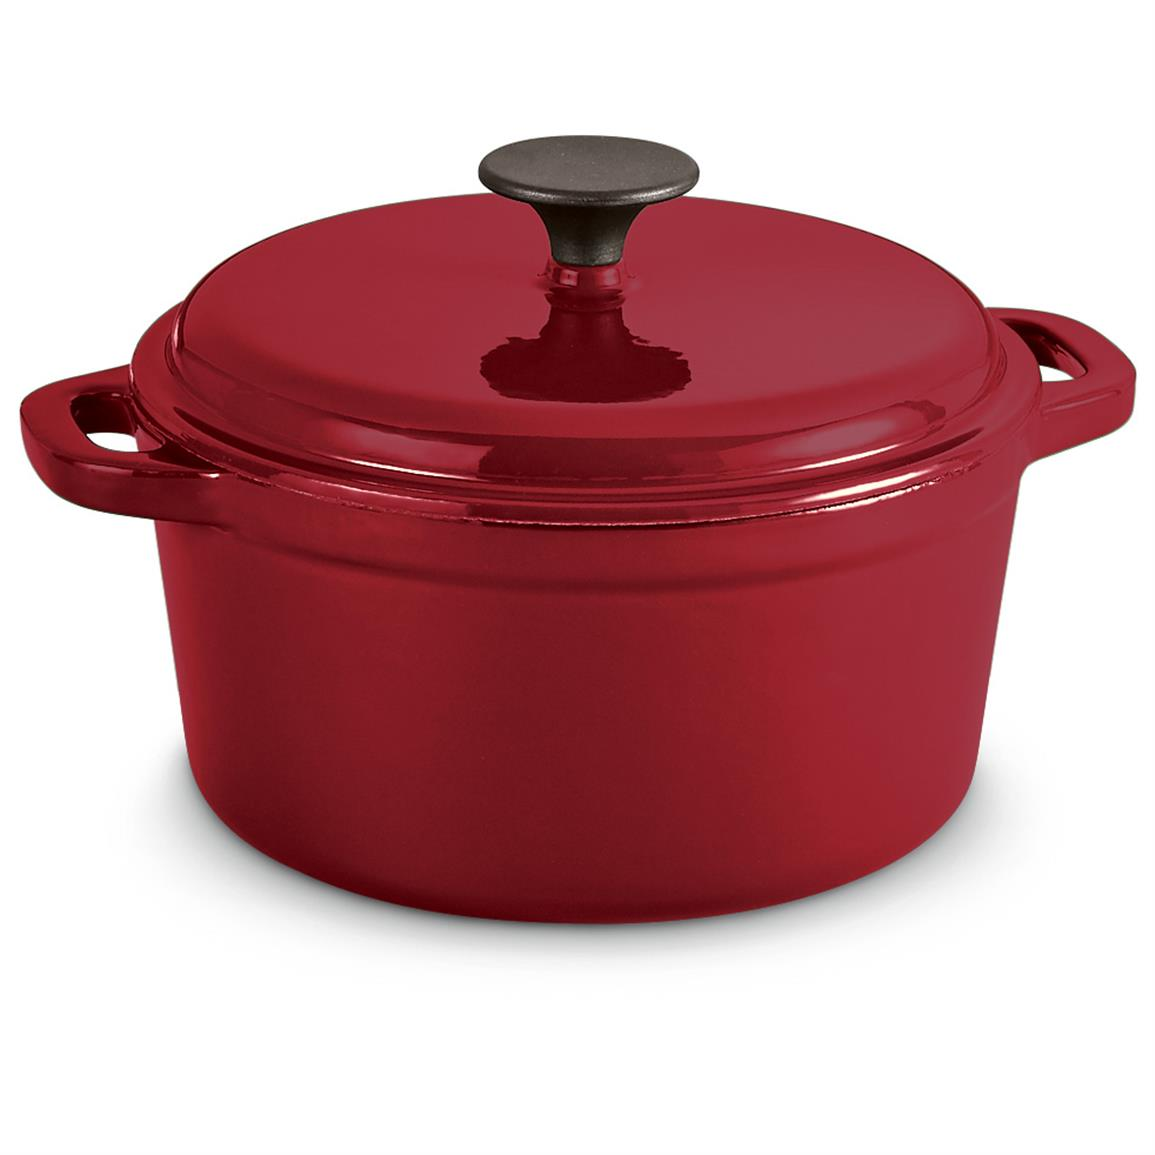 CASTLECREEK Enameled Cast Iron 3-Liter Dutch Oven with Lid, Red